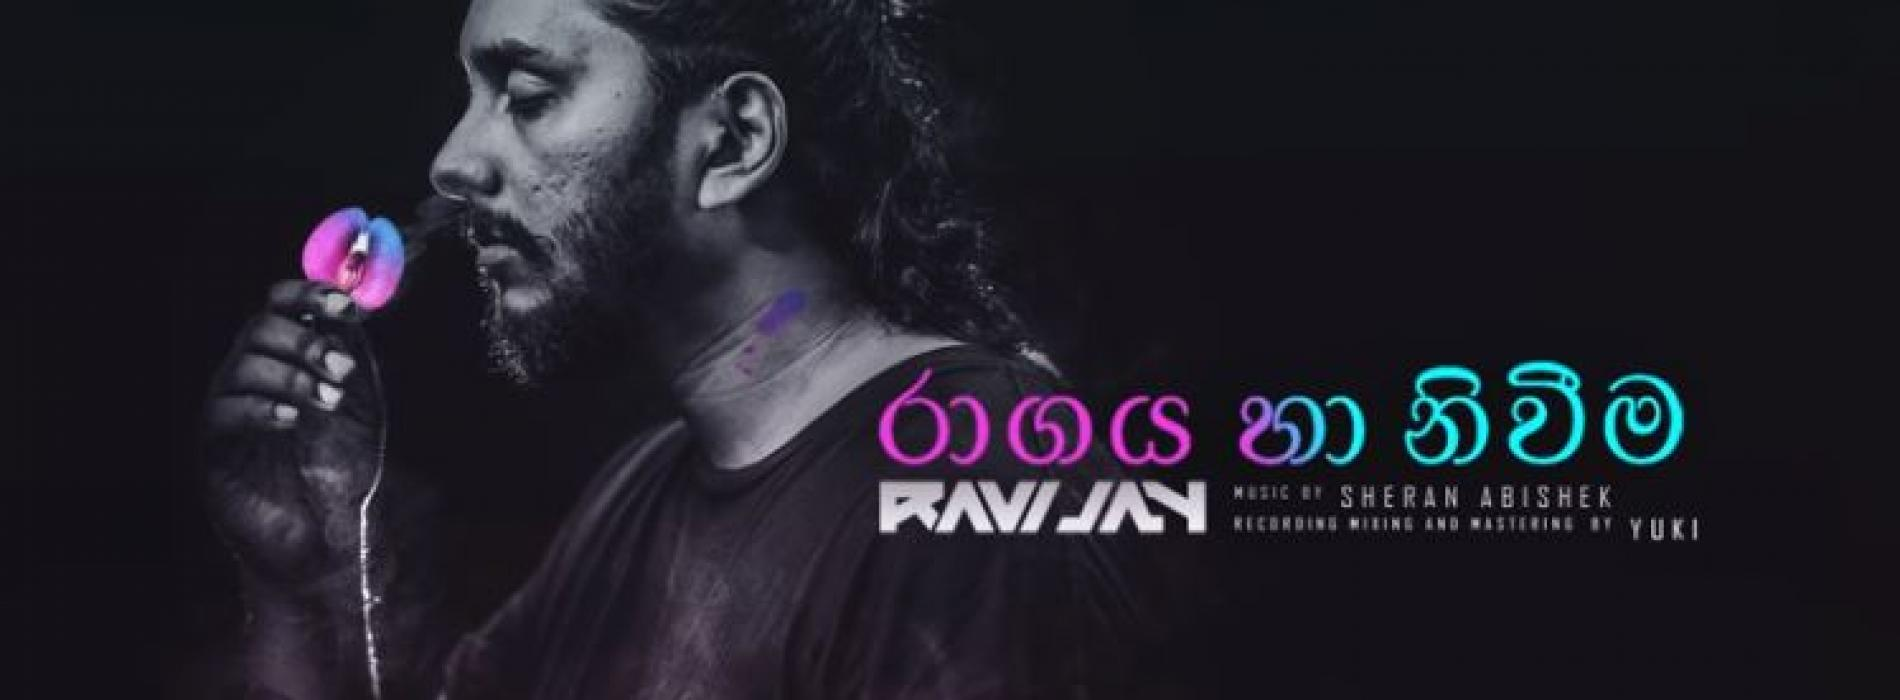 New Music : Ravi Jay – Raagaya Ha Niweema (රාගය හා නිවීම)